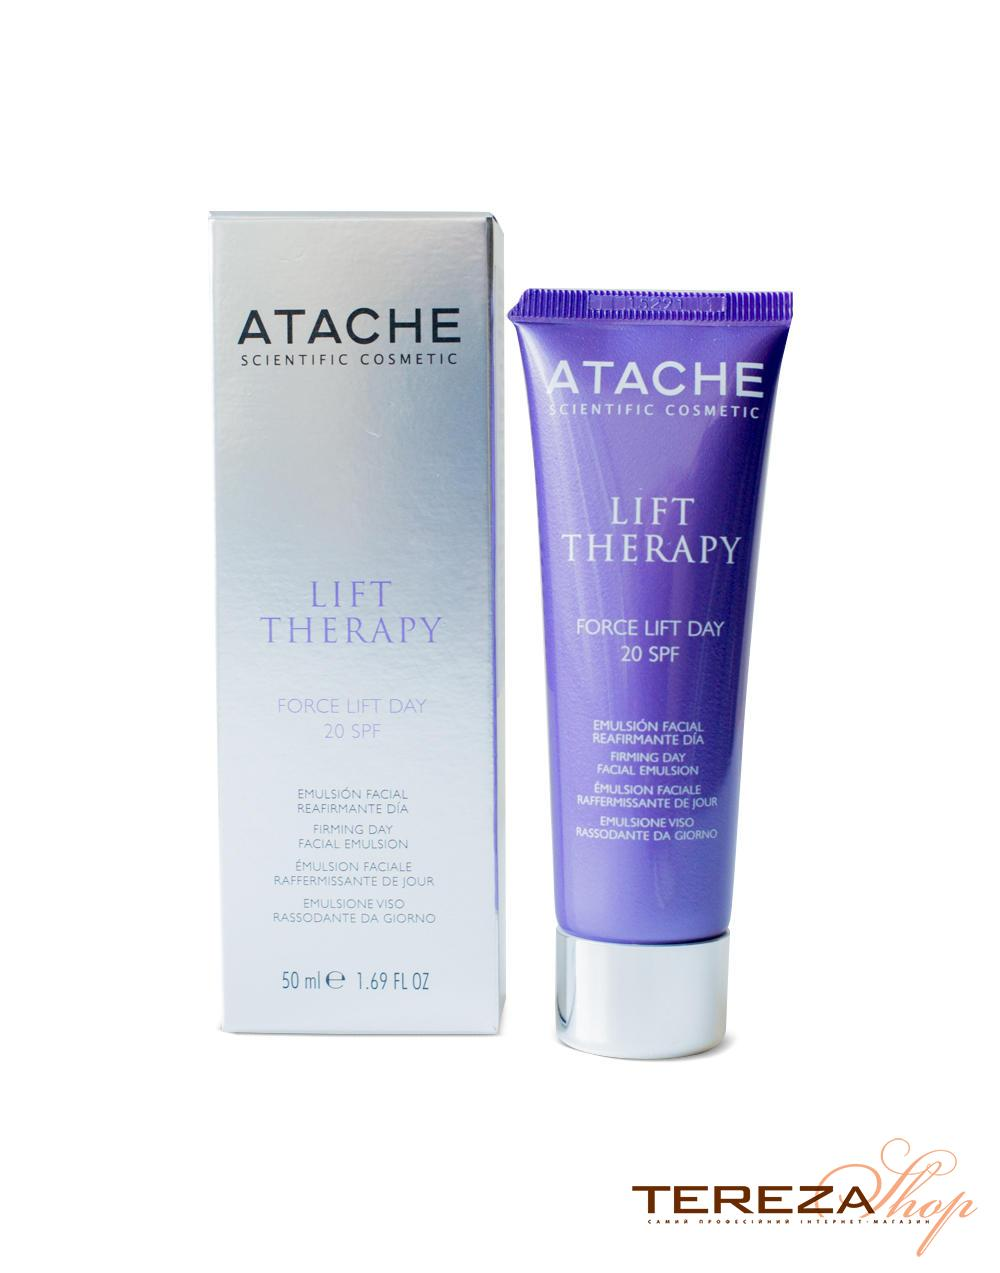 LIFT THERAPY FORCE LIFT DAY SPF 20 ATACHE | Tereza Shop